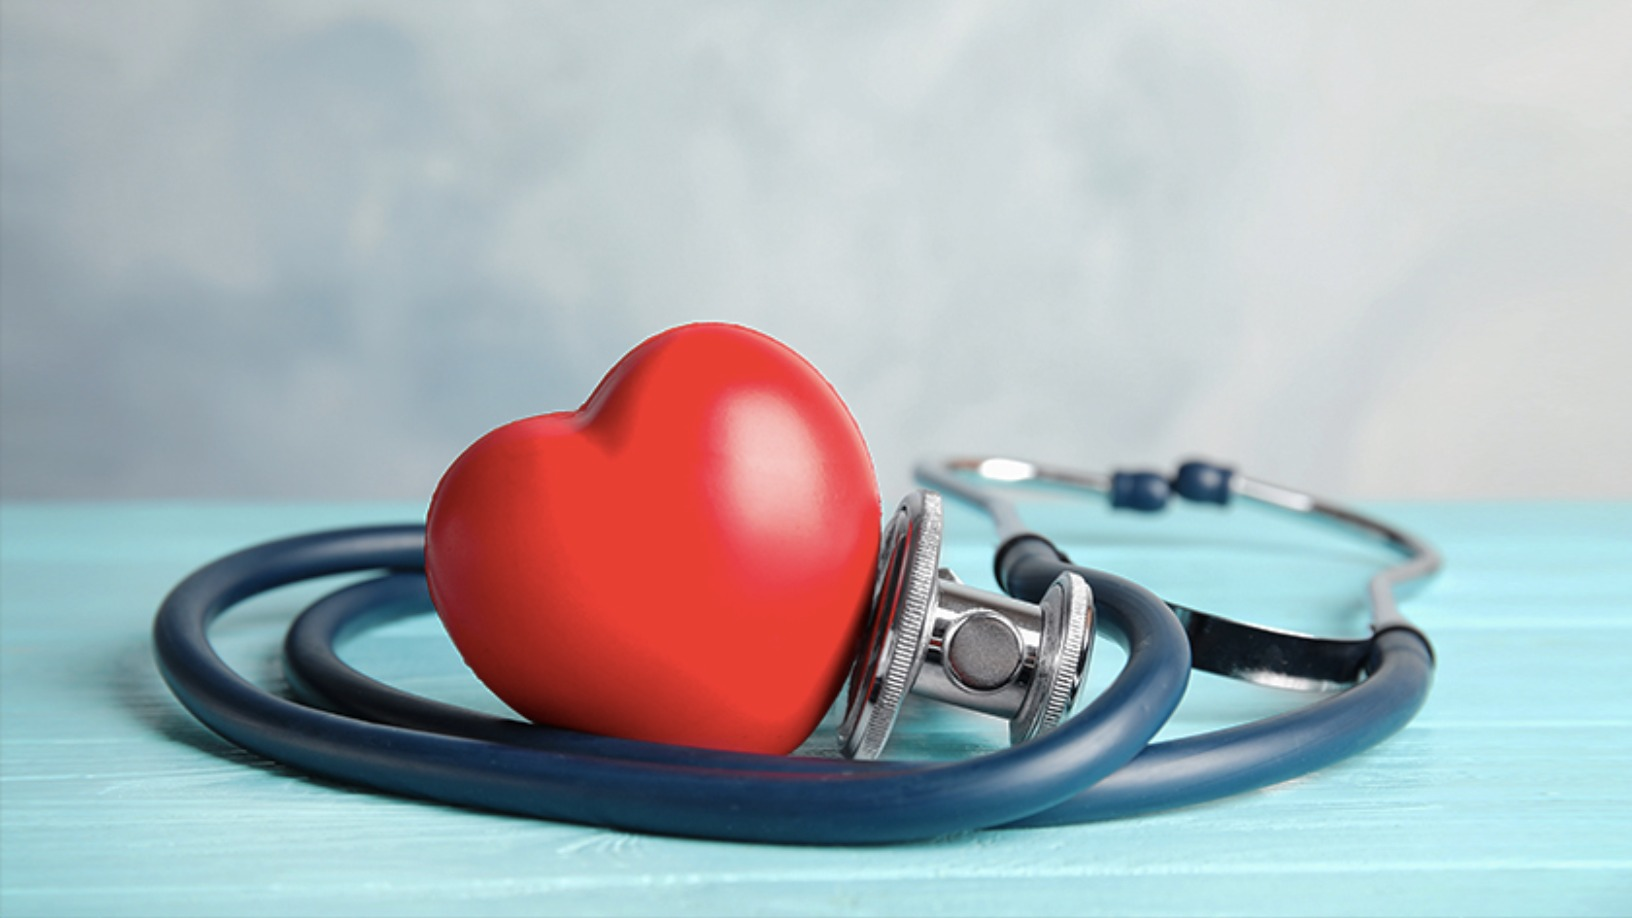 CH Biomedical: Pioneering world's smallest maglev artificial heart for humans